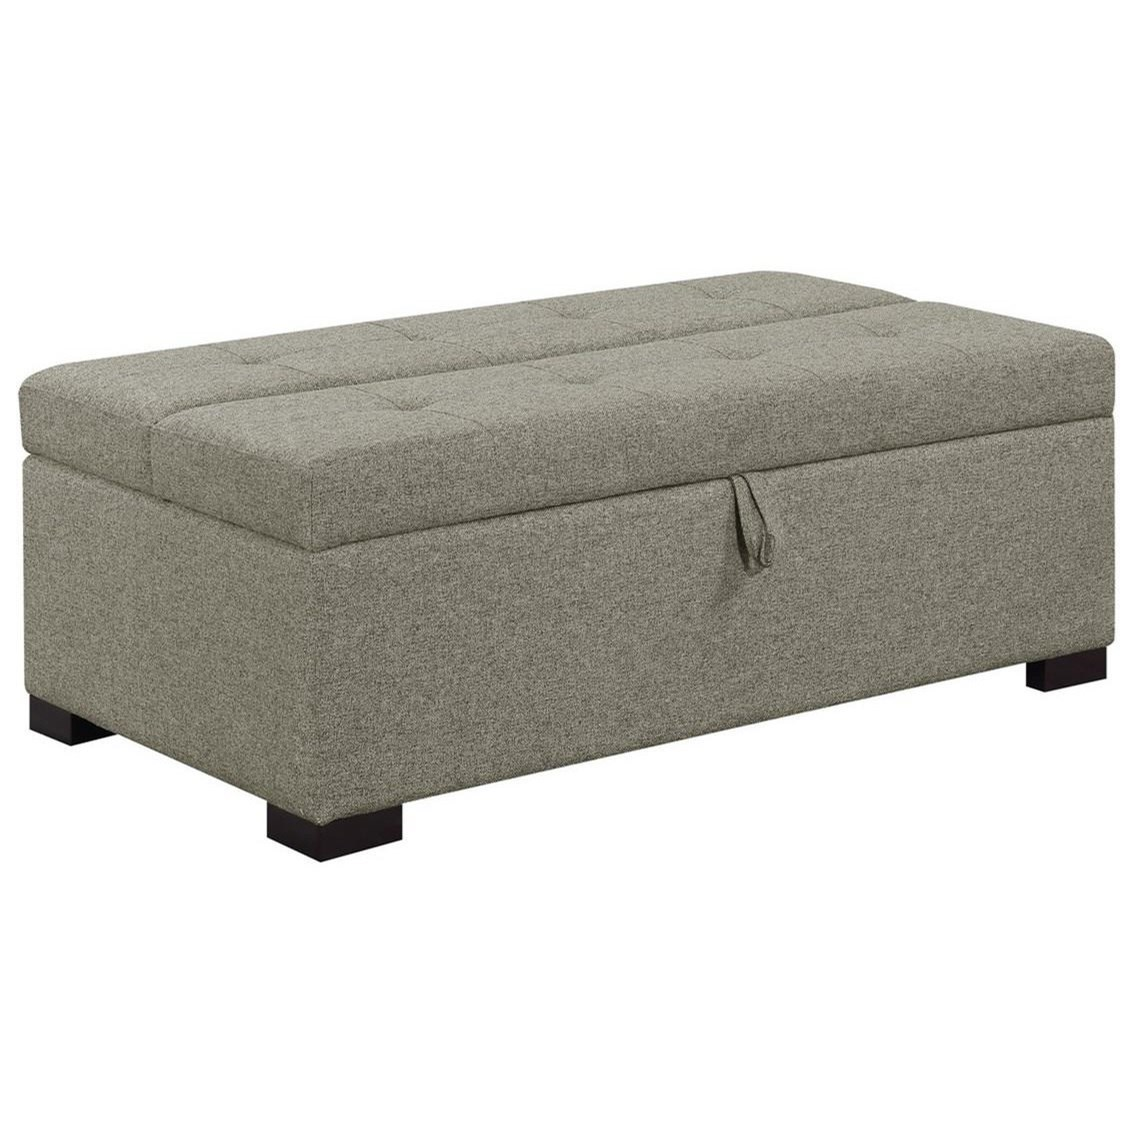 Cache Ottoman w/ Twin Sleeper by Emerald at Northeast Factory Direct